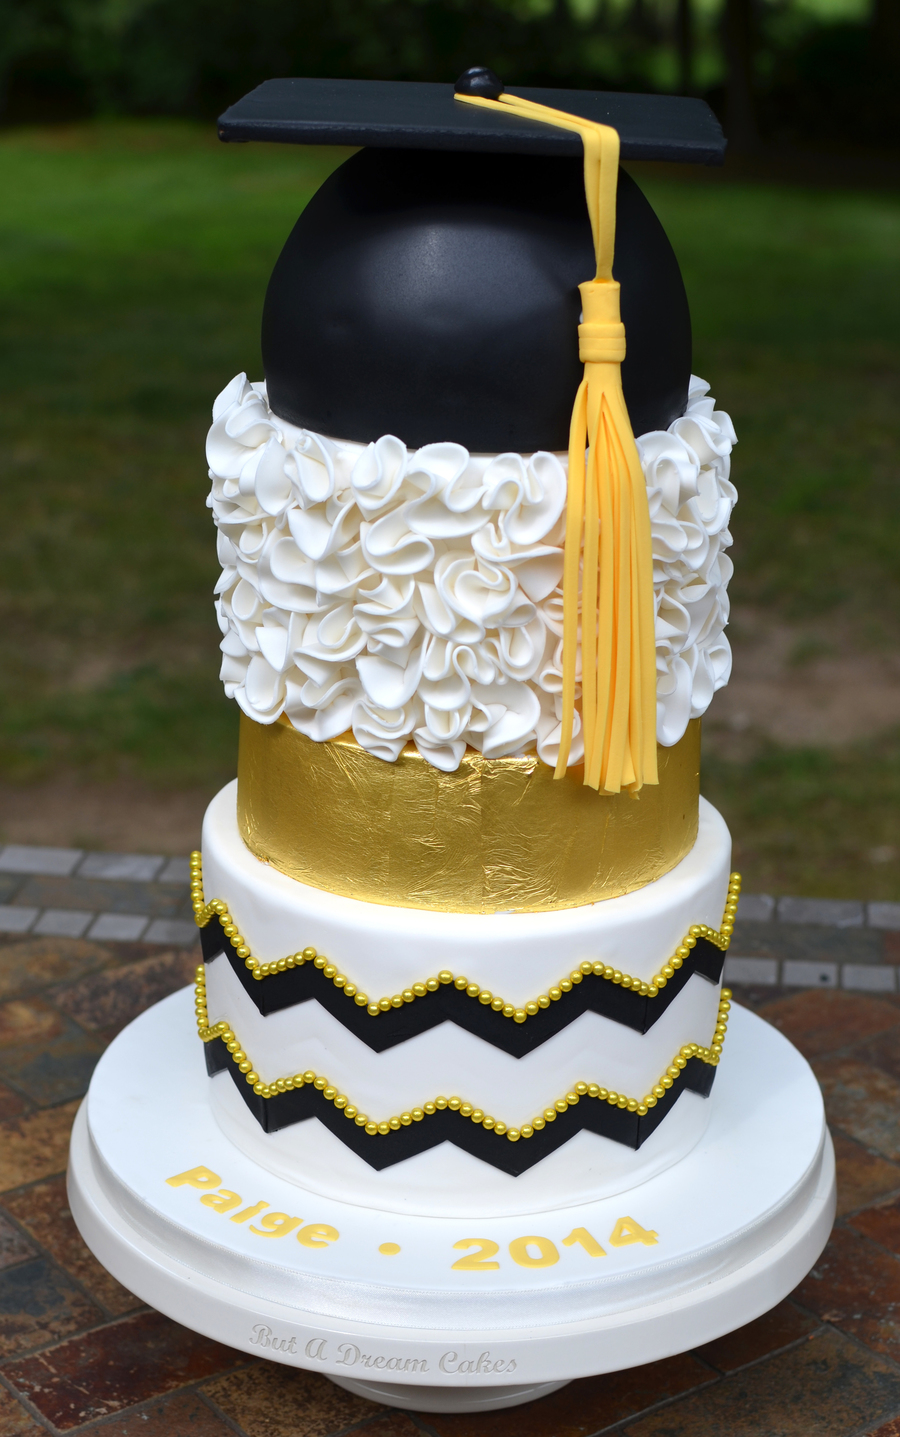 Black And Gold Graduation Cake With Ruffles And Gold Leaf on Cake Central